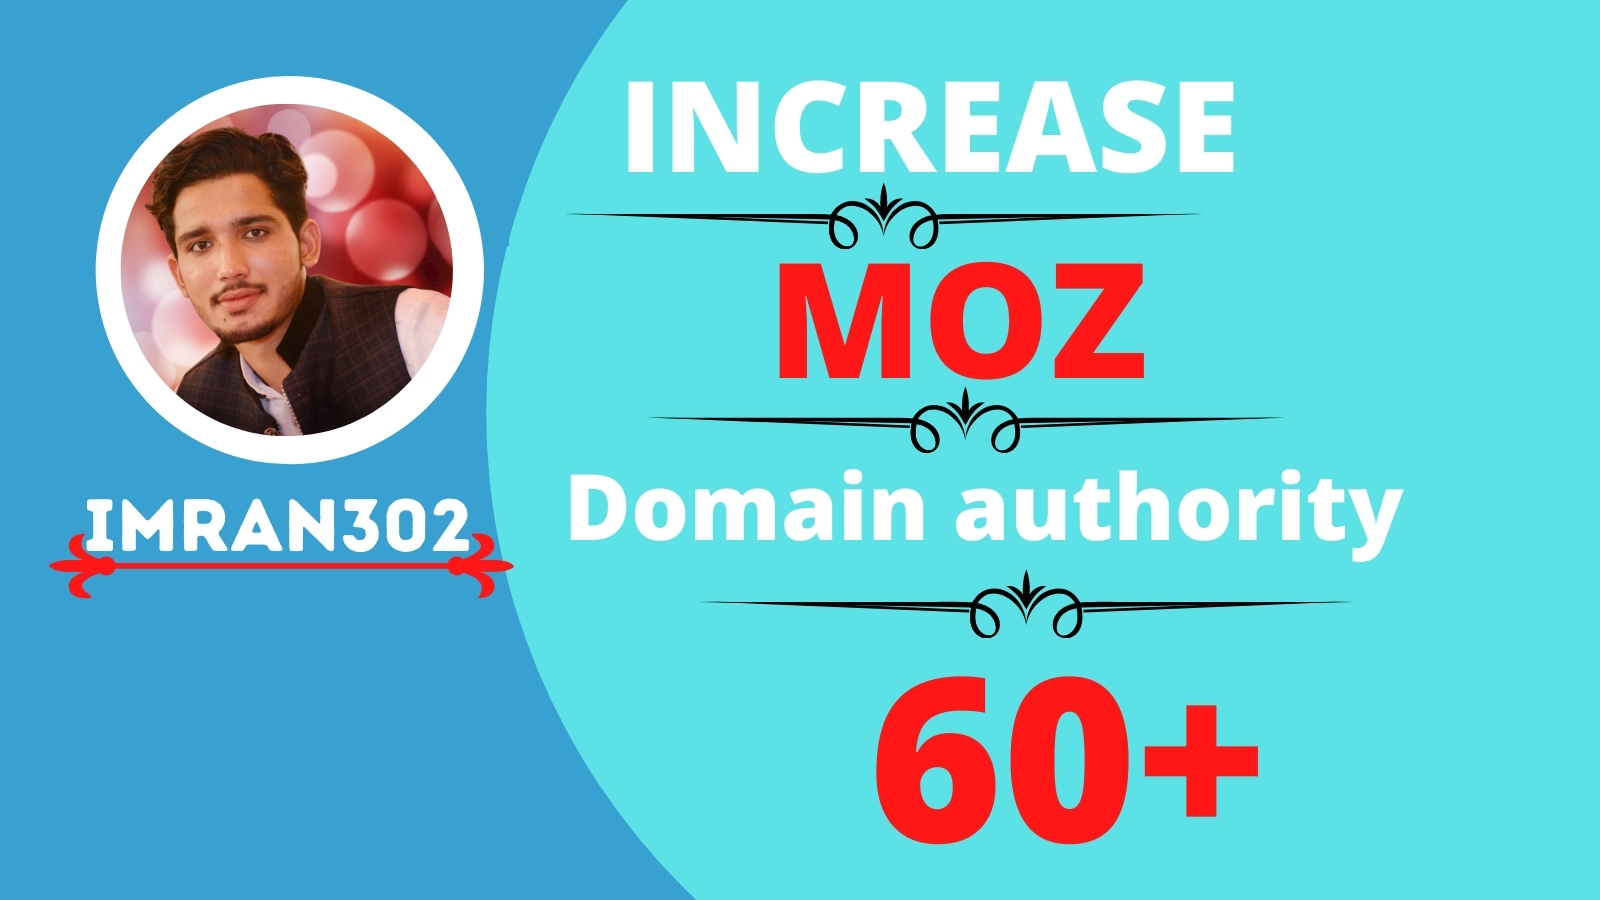 I will use new epitomize SEO tactic to build authority and dofollow backlinks